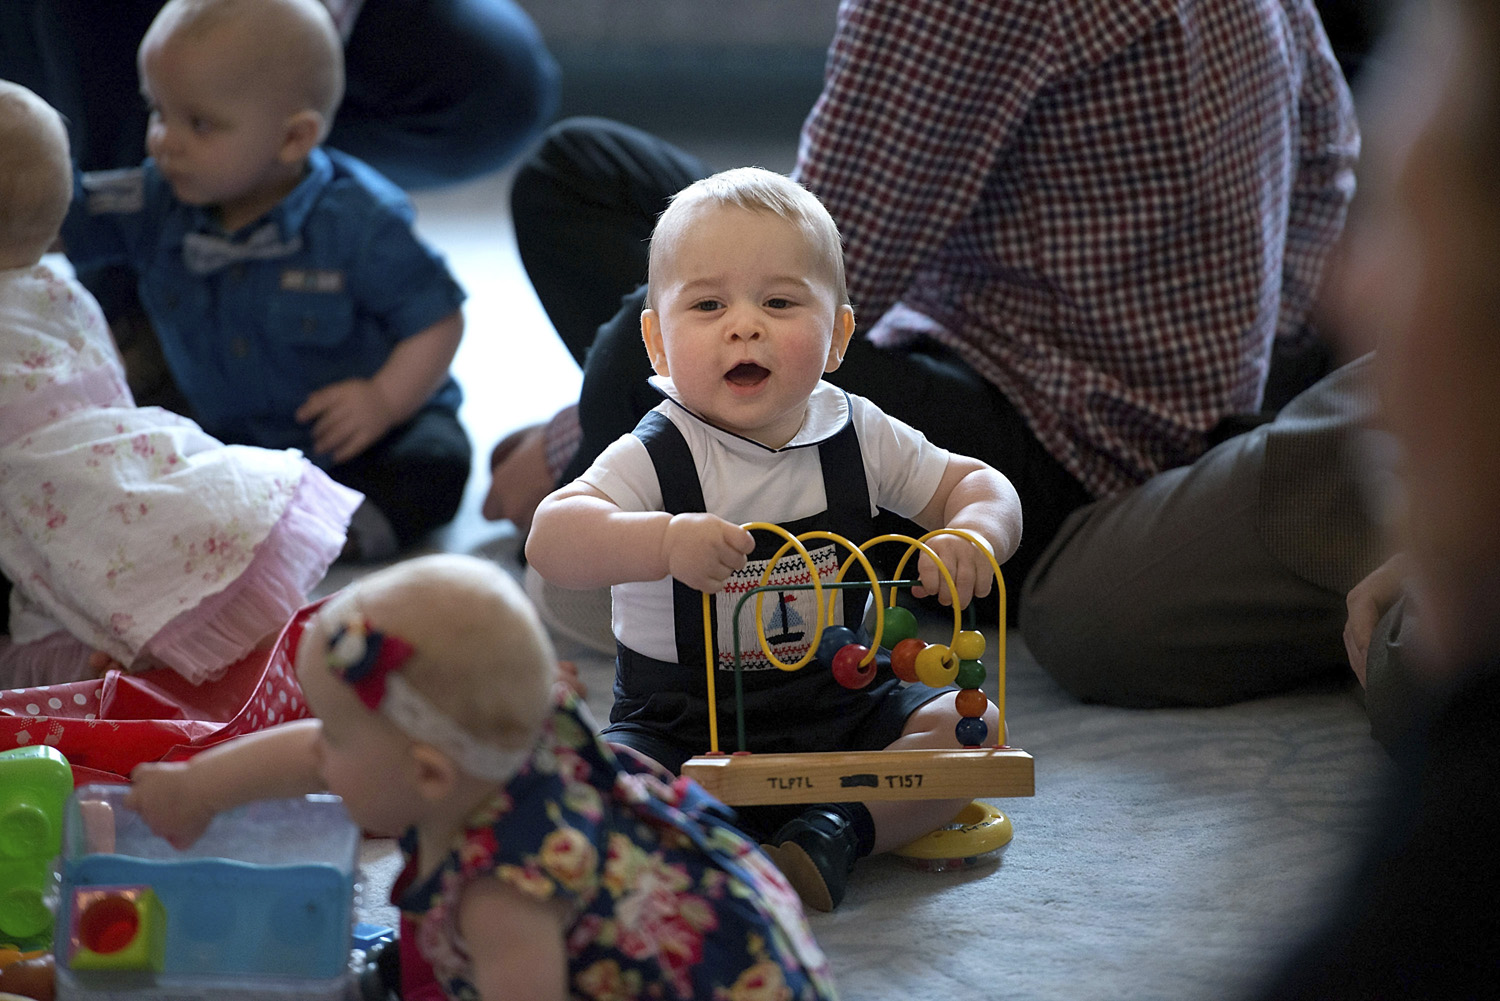 Britain's Prince George, center, plays during a visit to Plunket, a nurse and parents group at Government House in Wellington, New Zealand April 9, 2014.